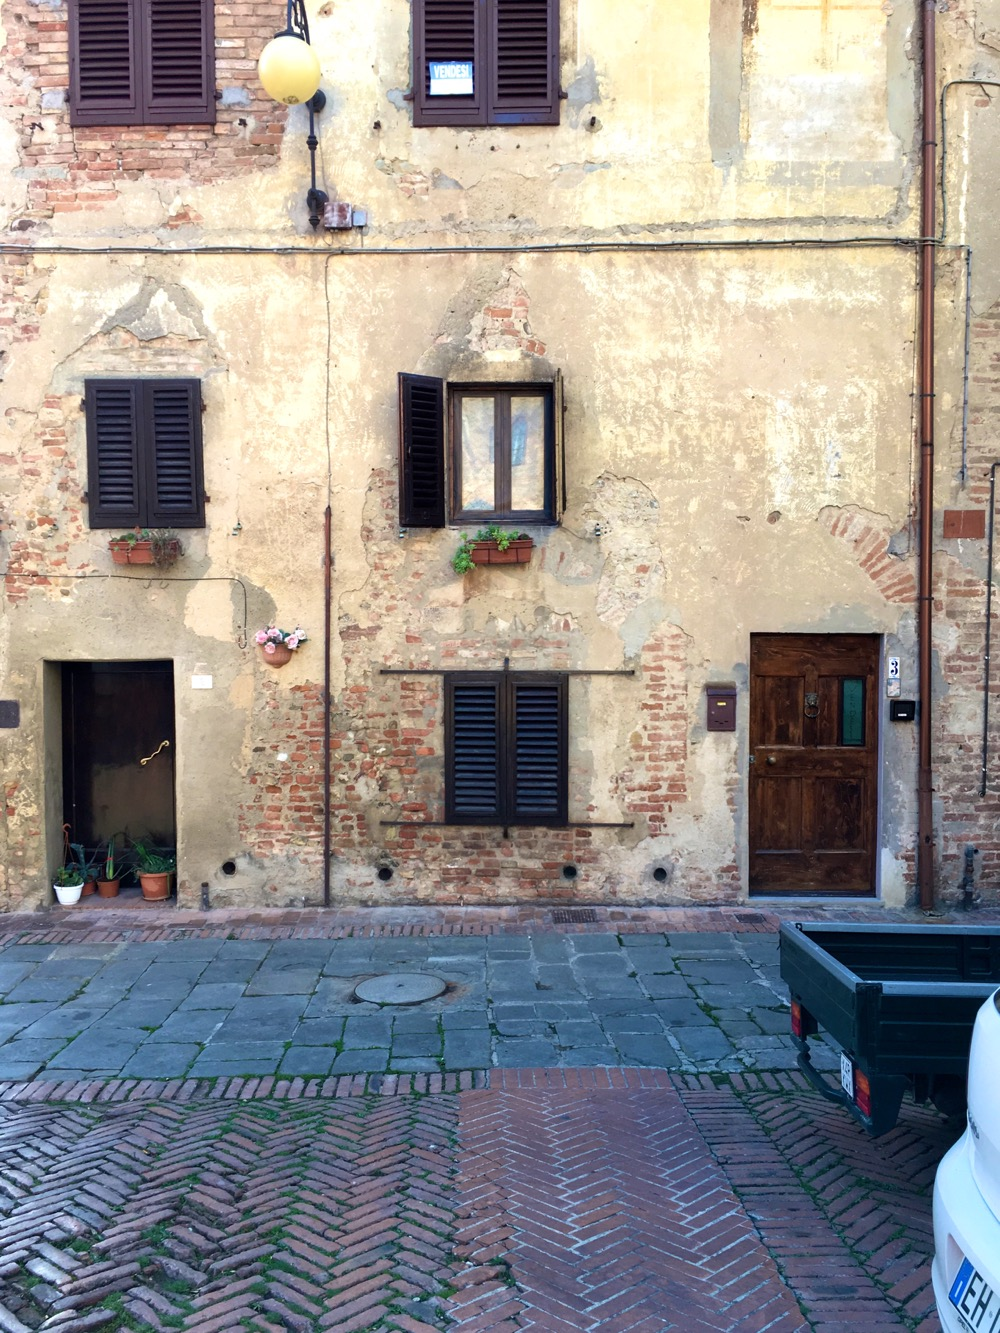 A typical scene in Certaldo Alto where we stayed for our time in Tuscany.